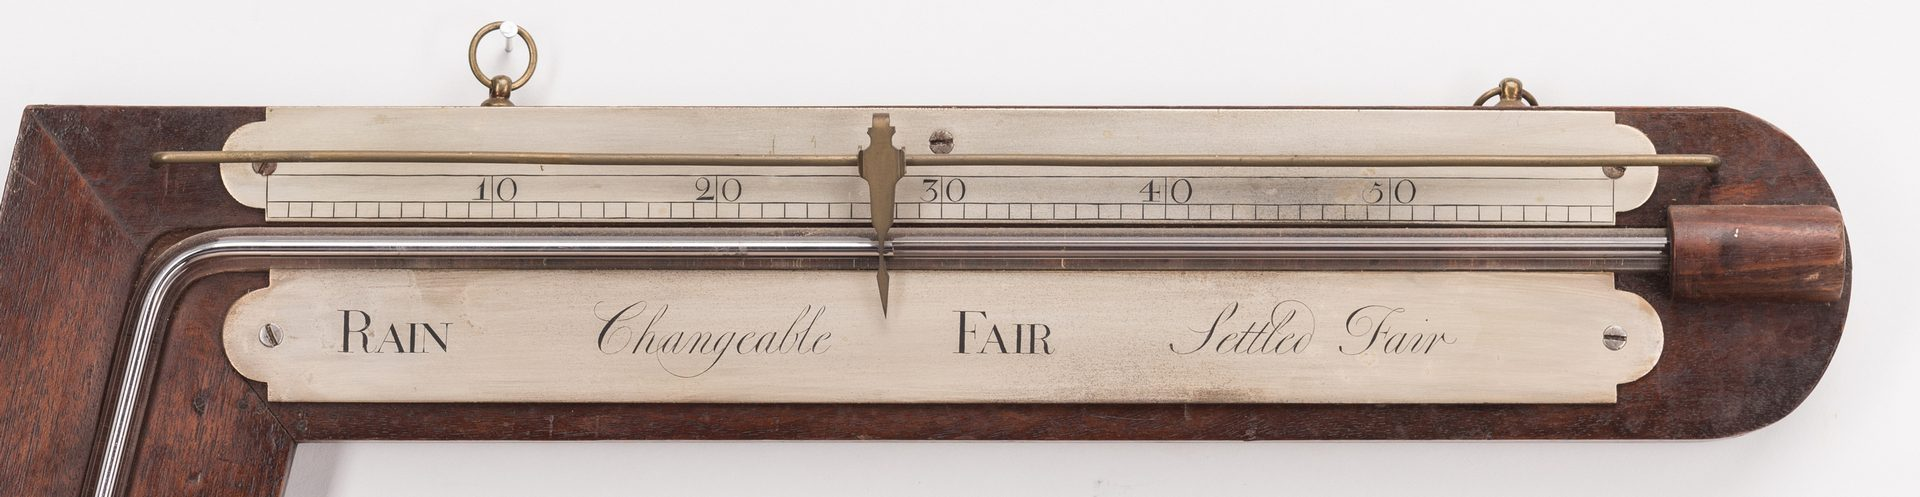 Lot 710: English Angle or Sign Post Barometer